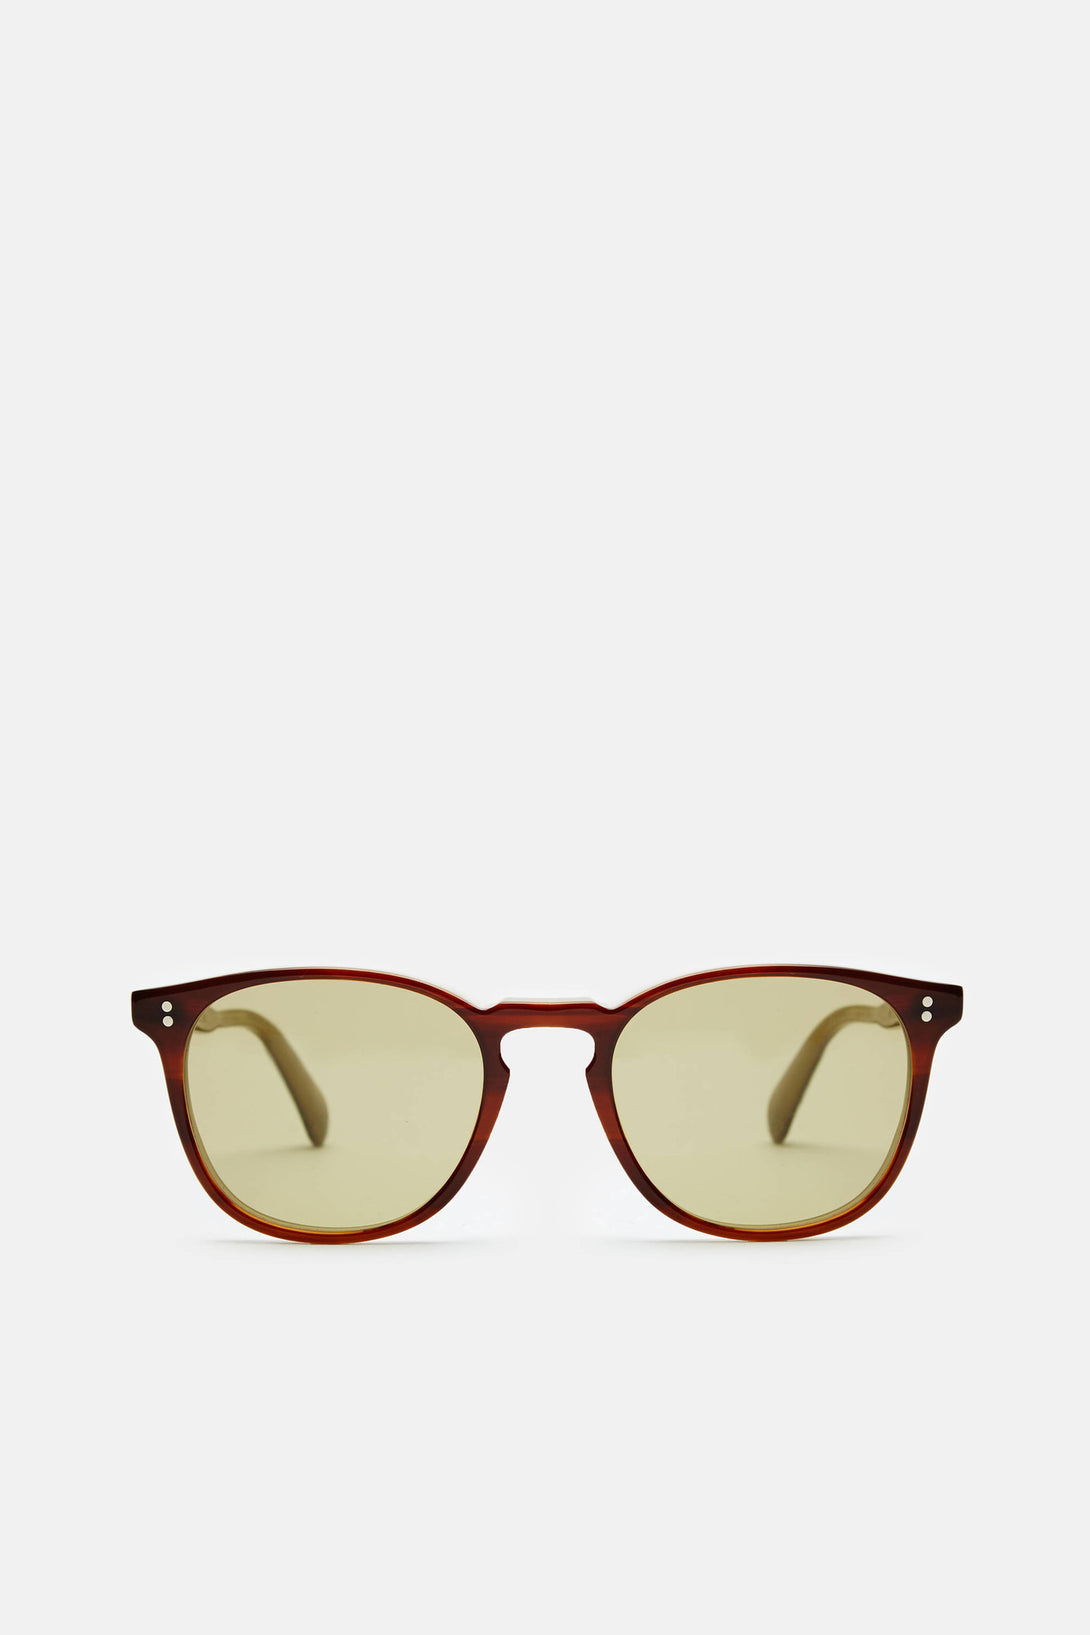 Finley Esq. Sun - 402 with Green Photochromic Lens